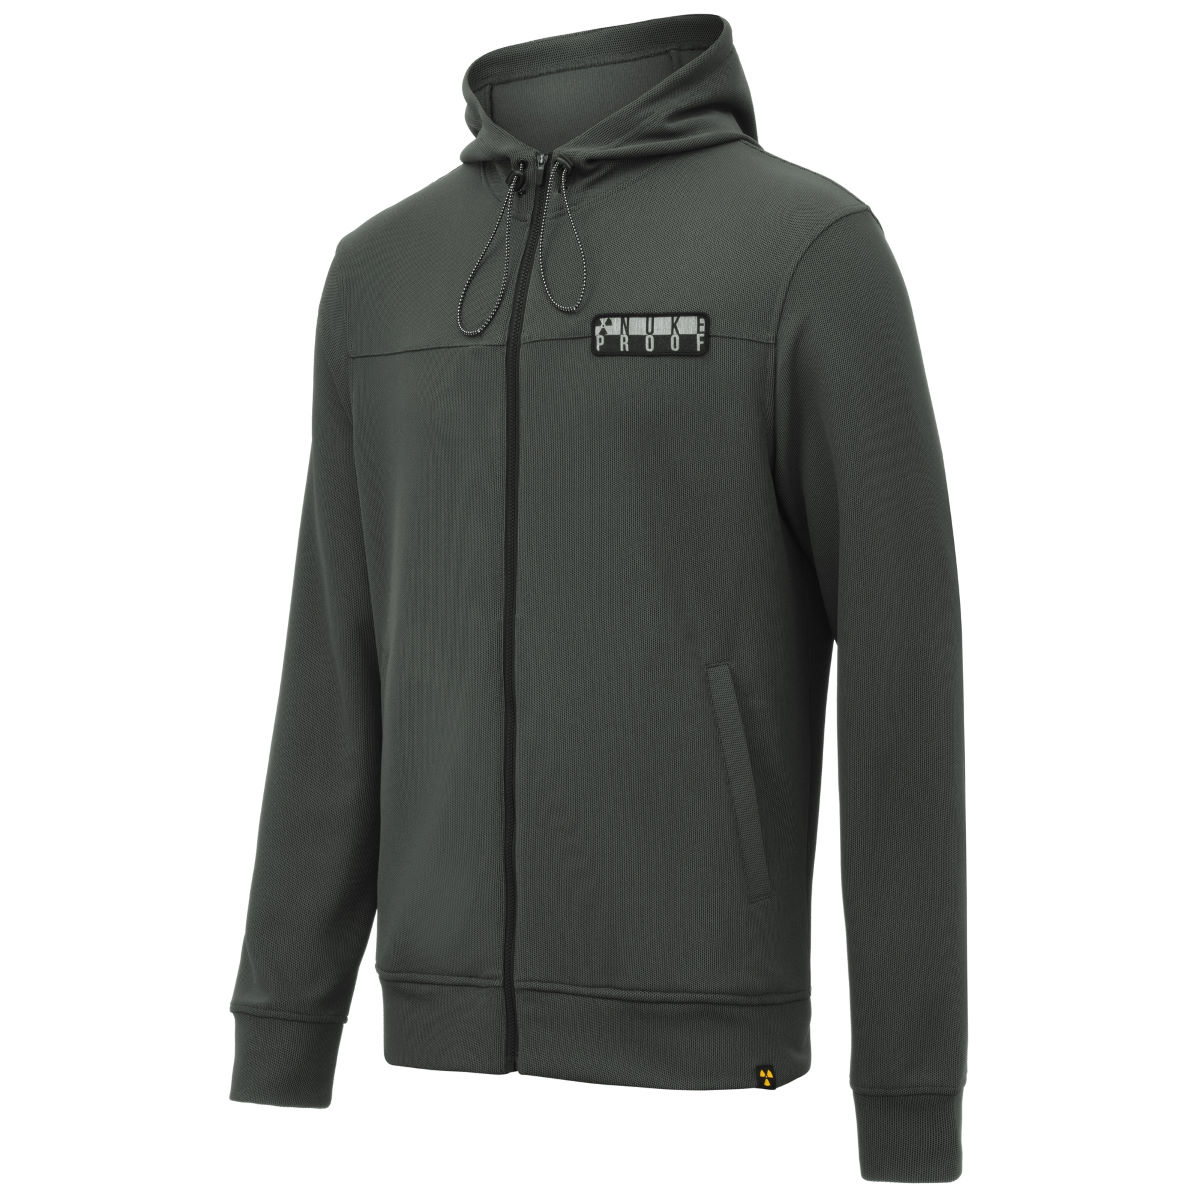 Nukeproof Nukeproof Outland Tech Hoodie   Hoodies